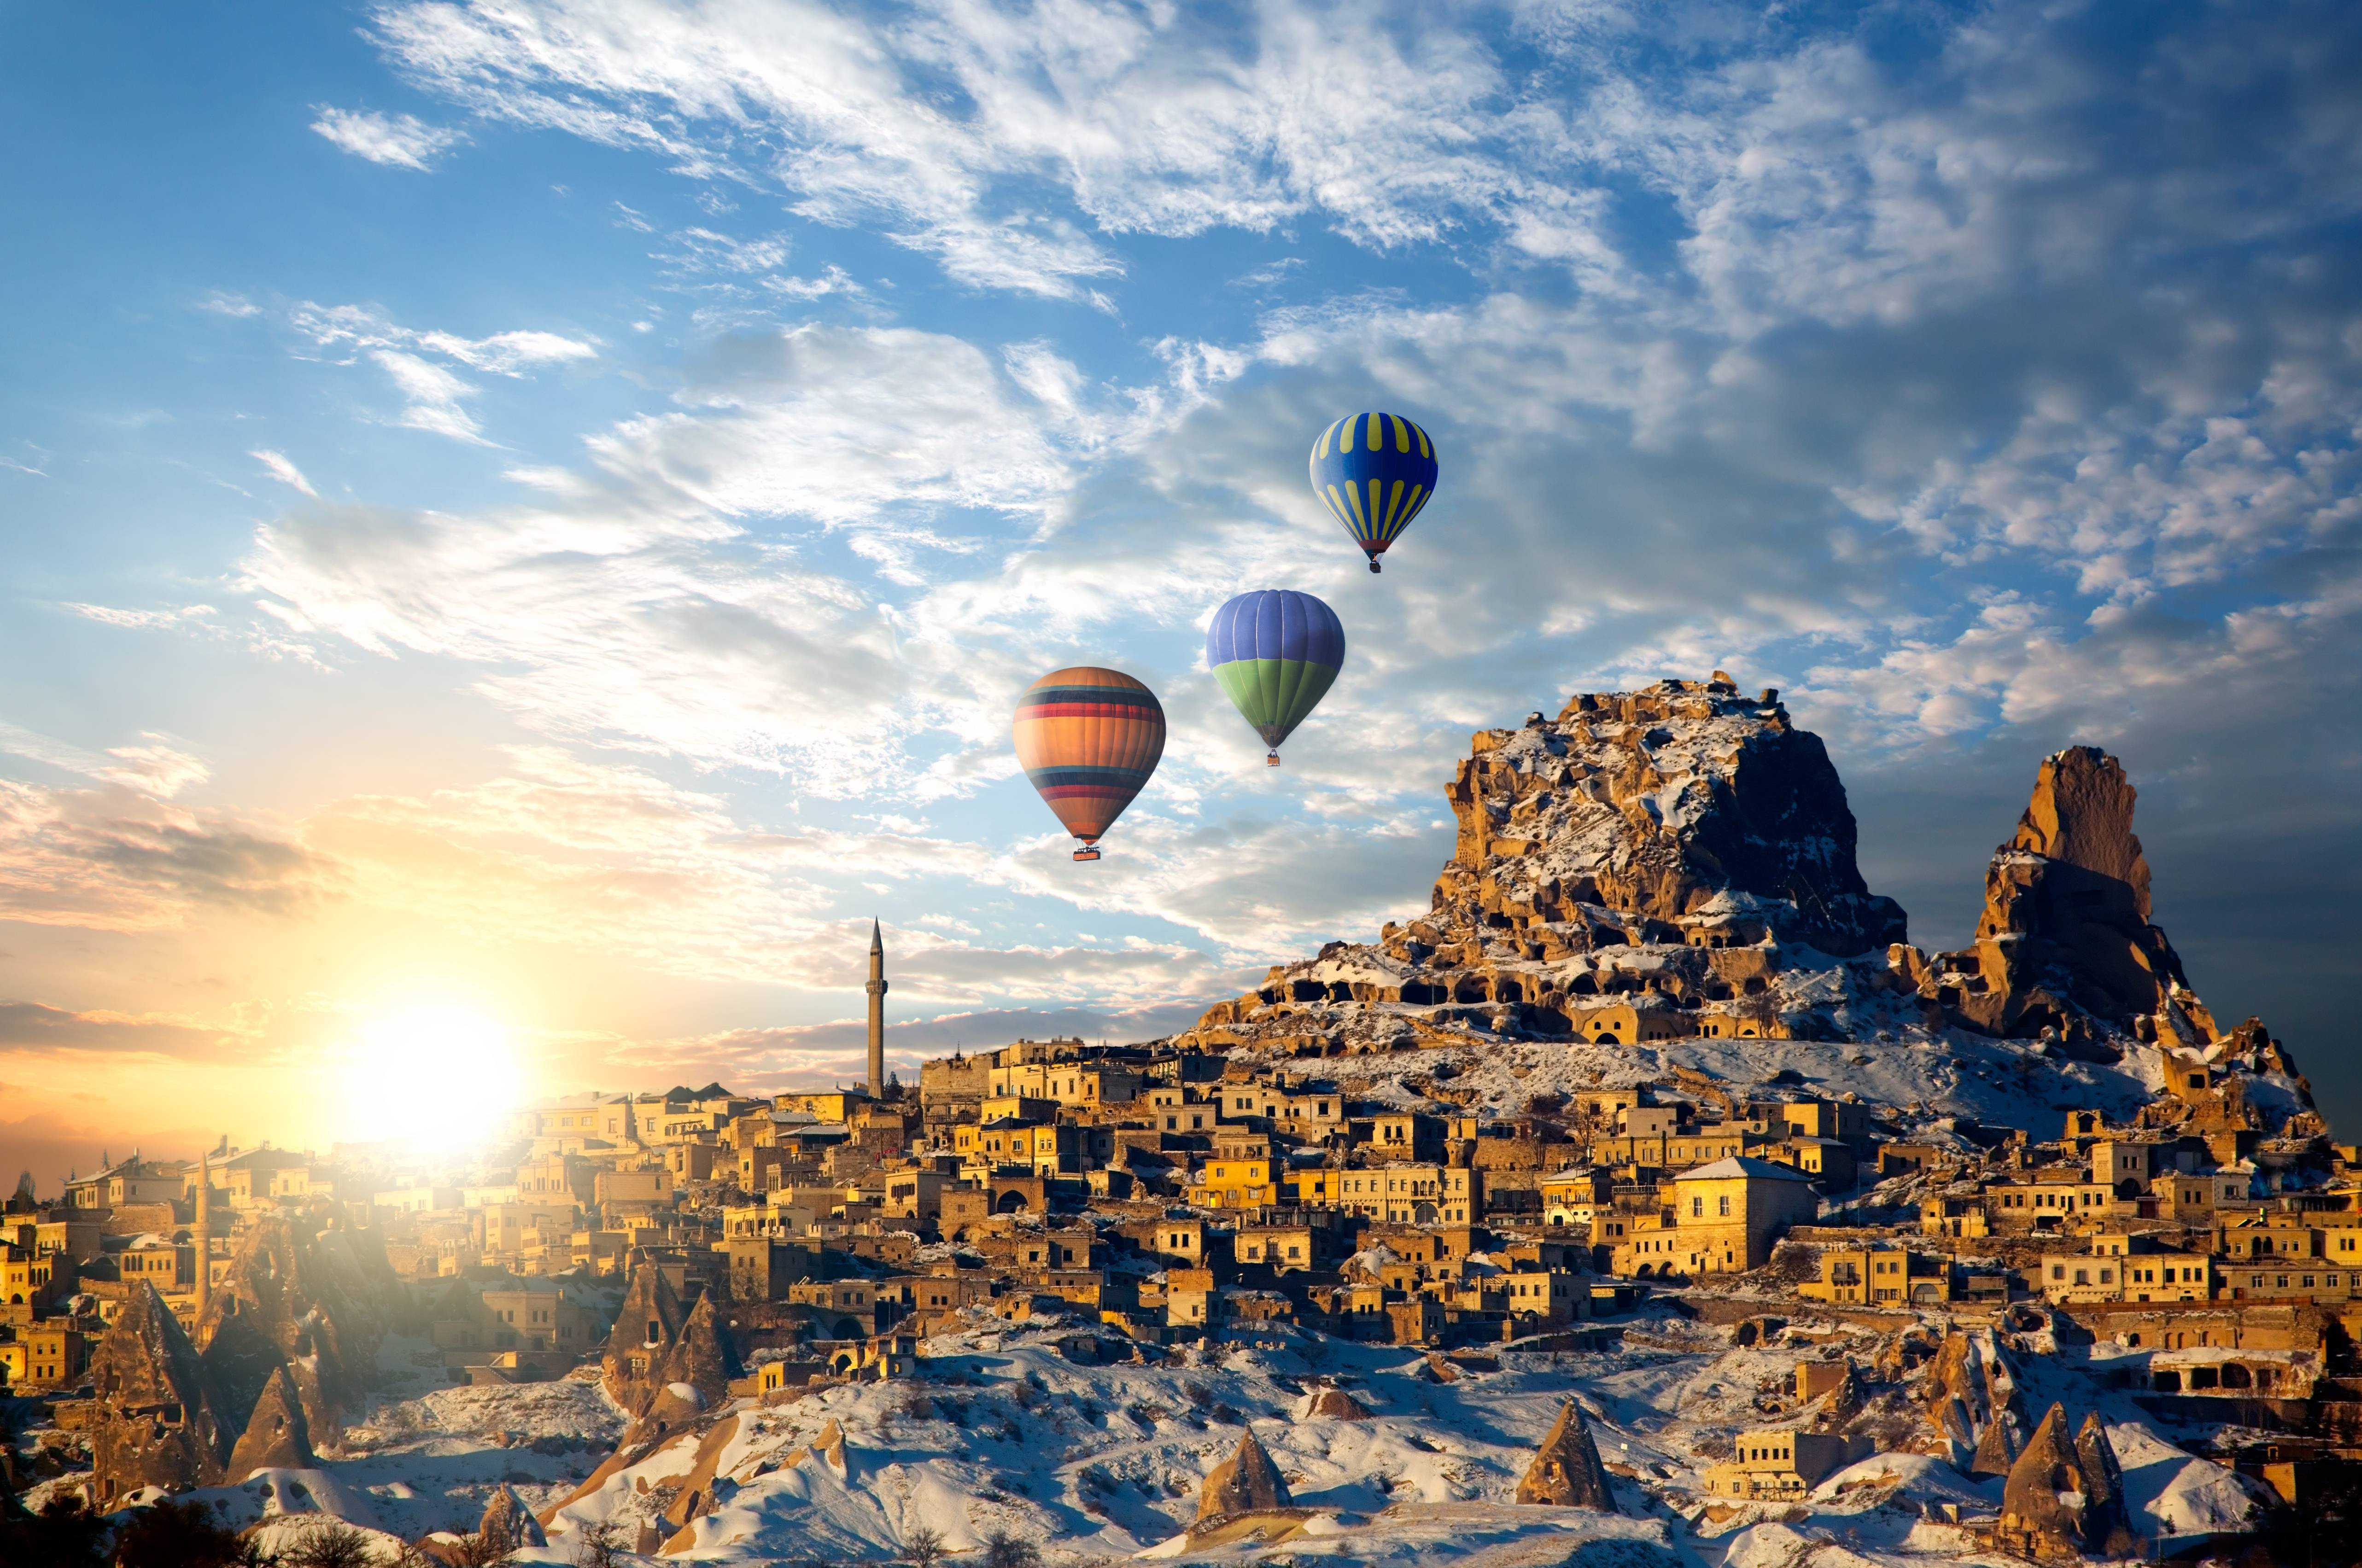 Turkey 4k Wallpapers For Your Desktop Or Mobile Screen Free